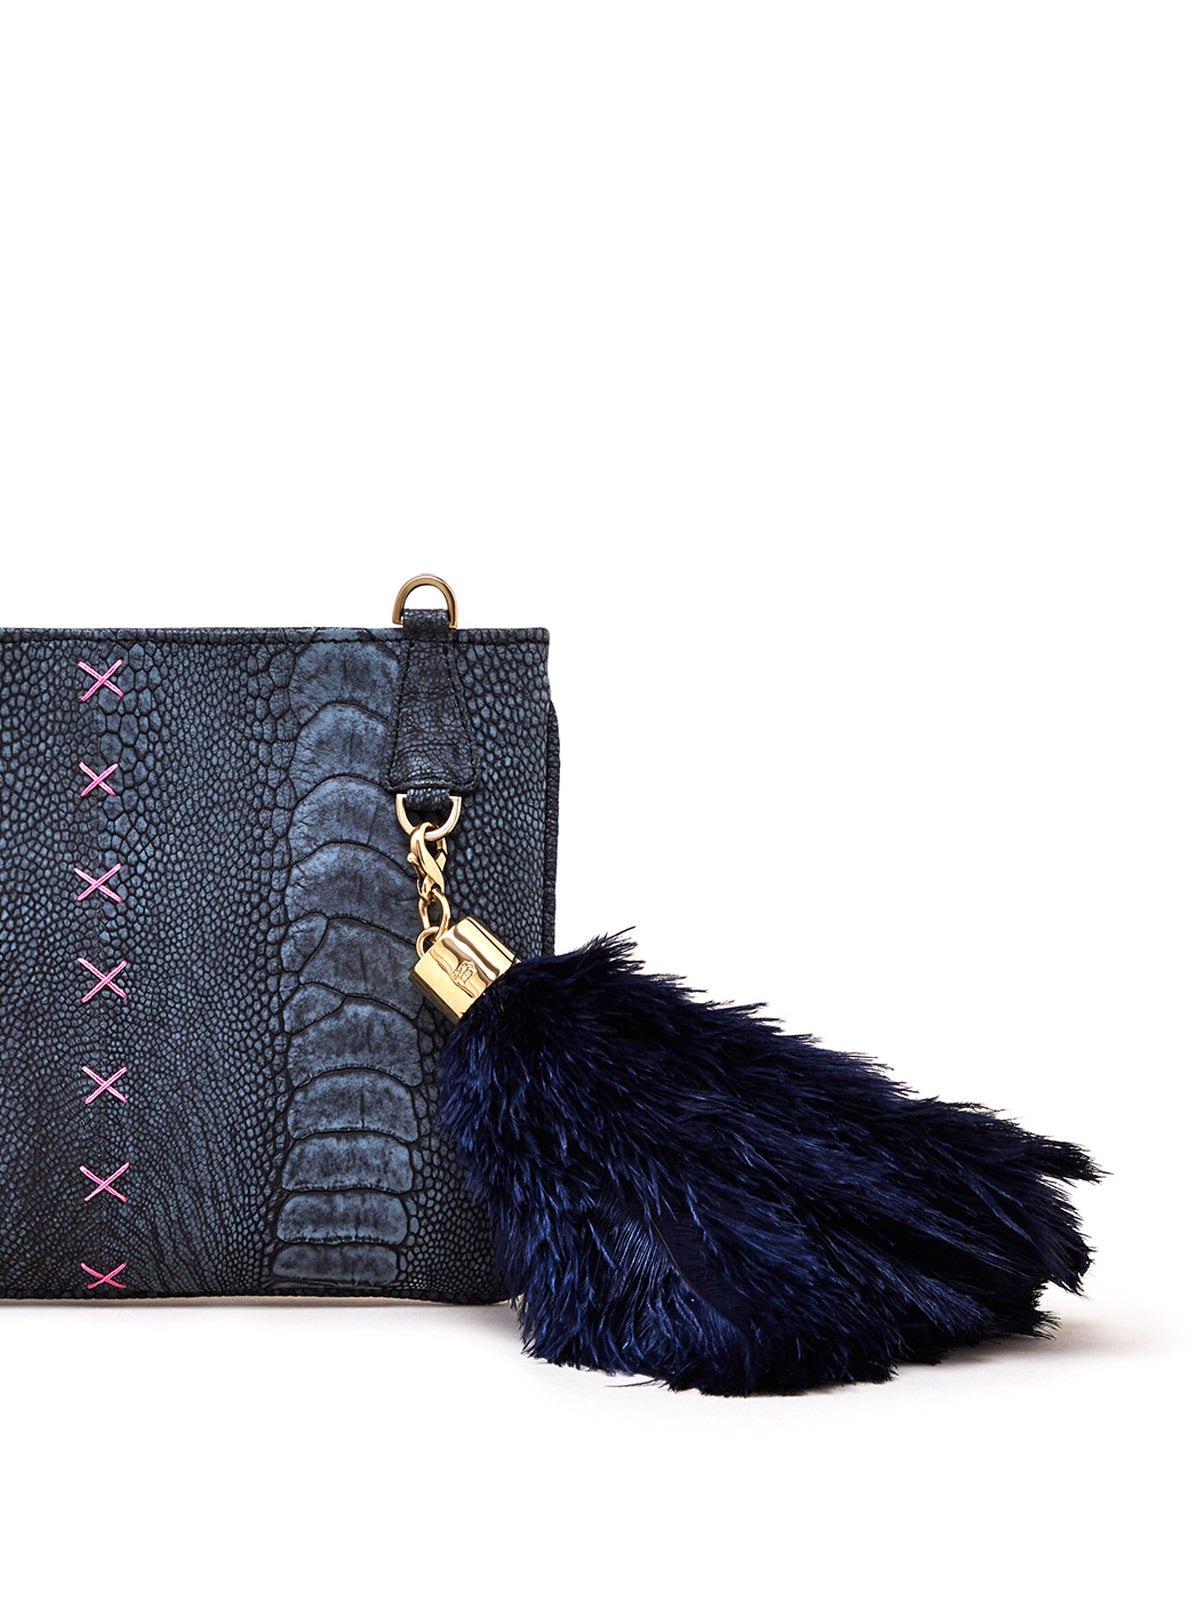 Black Stonewash Aja Clutch with Black Ostrich Feather Charm